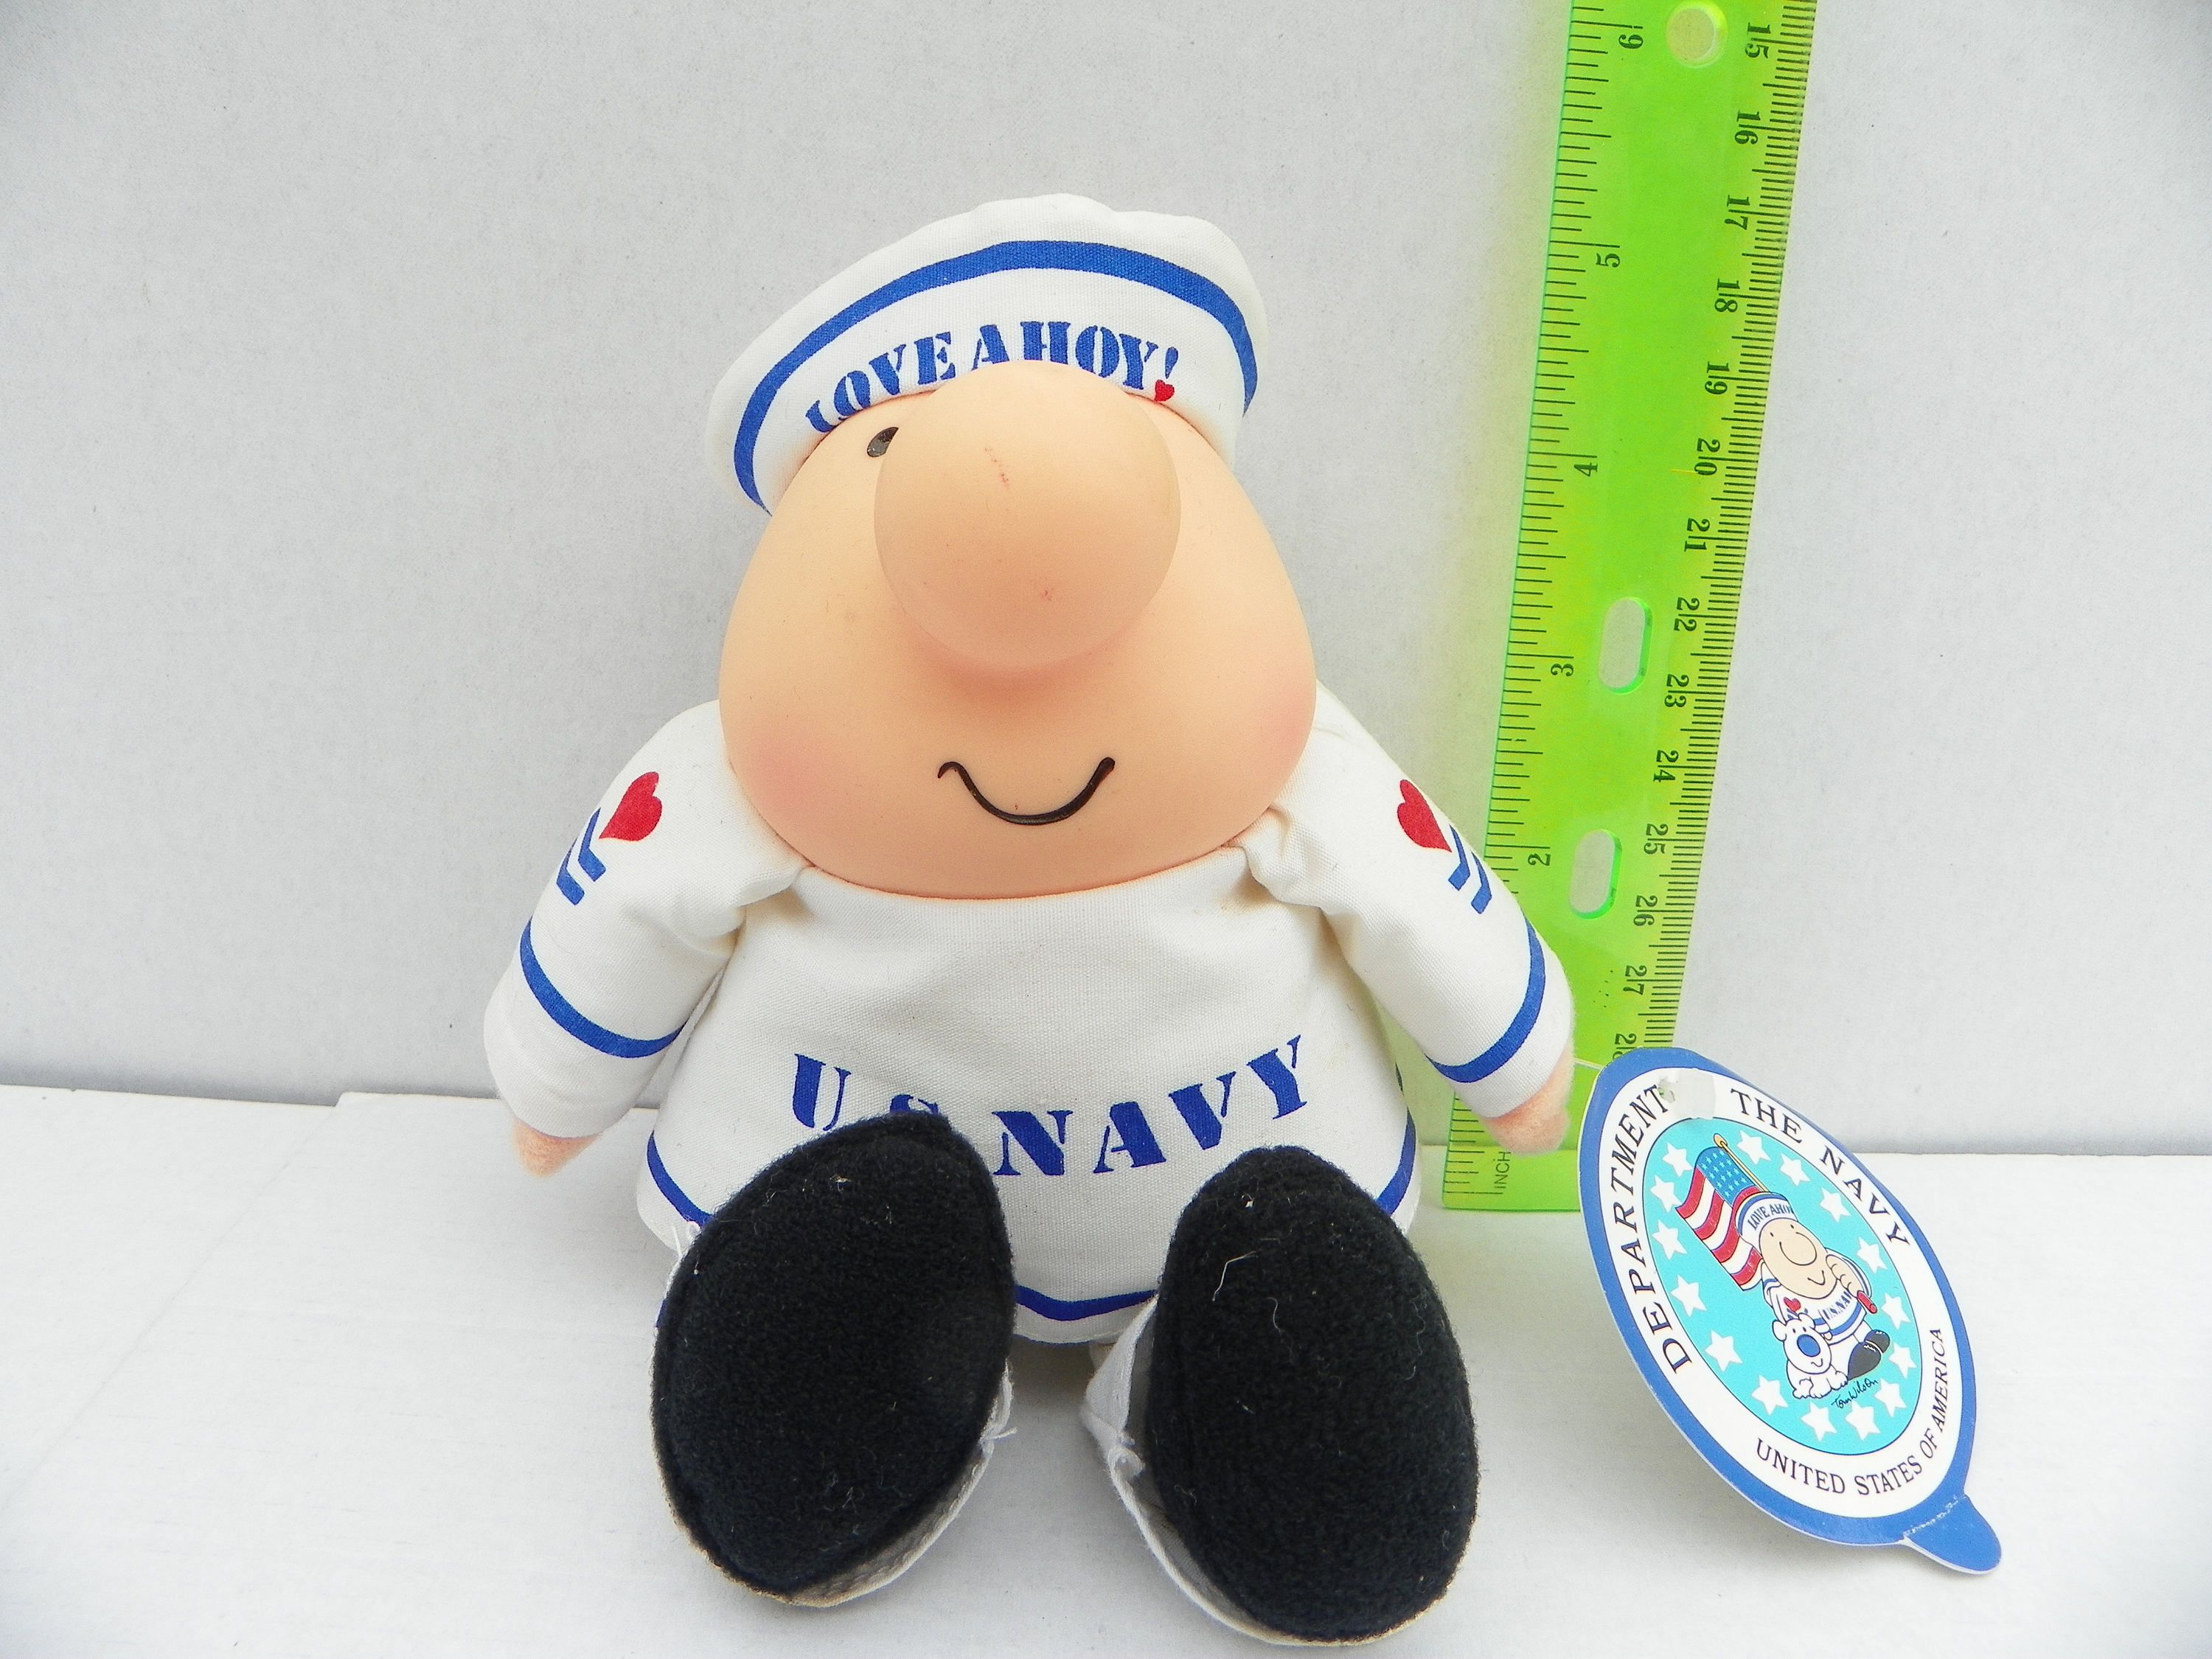 Vintage 1986 ziggy cloth doll us navy ziggy doll love ahoy vintage 1986 ziggy cloth doll u navy ziggy doll love ahoy american greetings ziggy soft toy tom wilson ziggy united states navy by shersbears on kristyandbryce Gallery